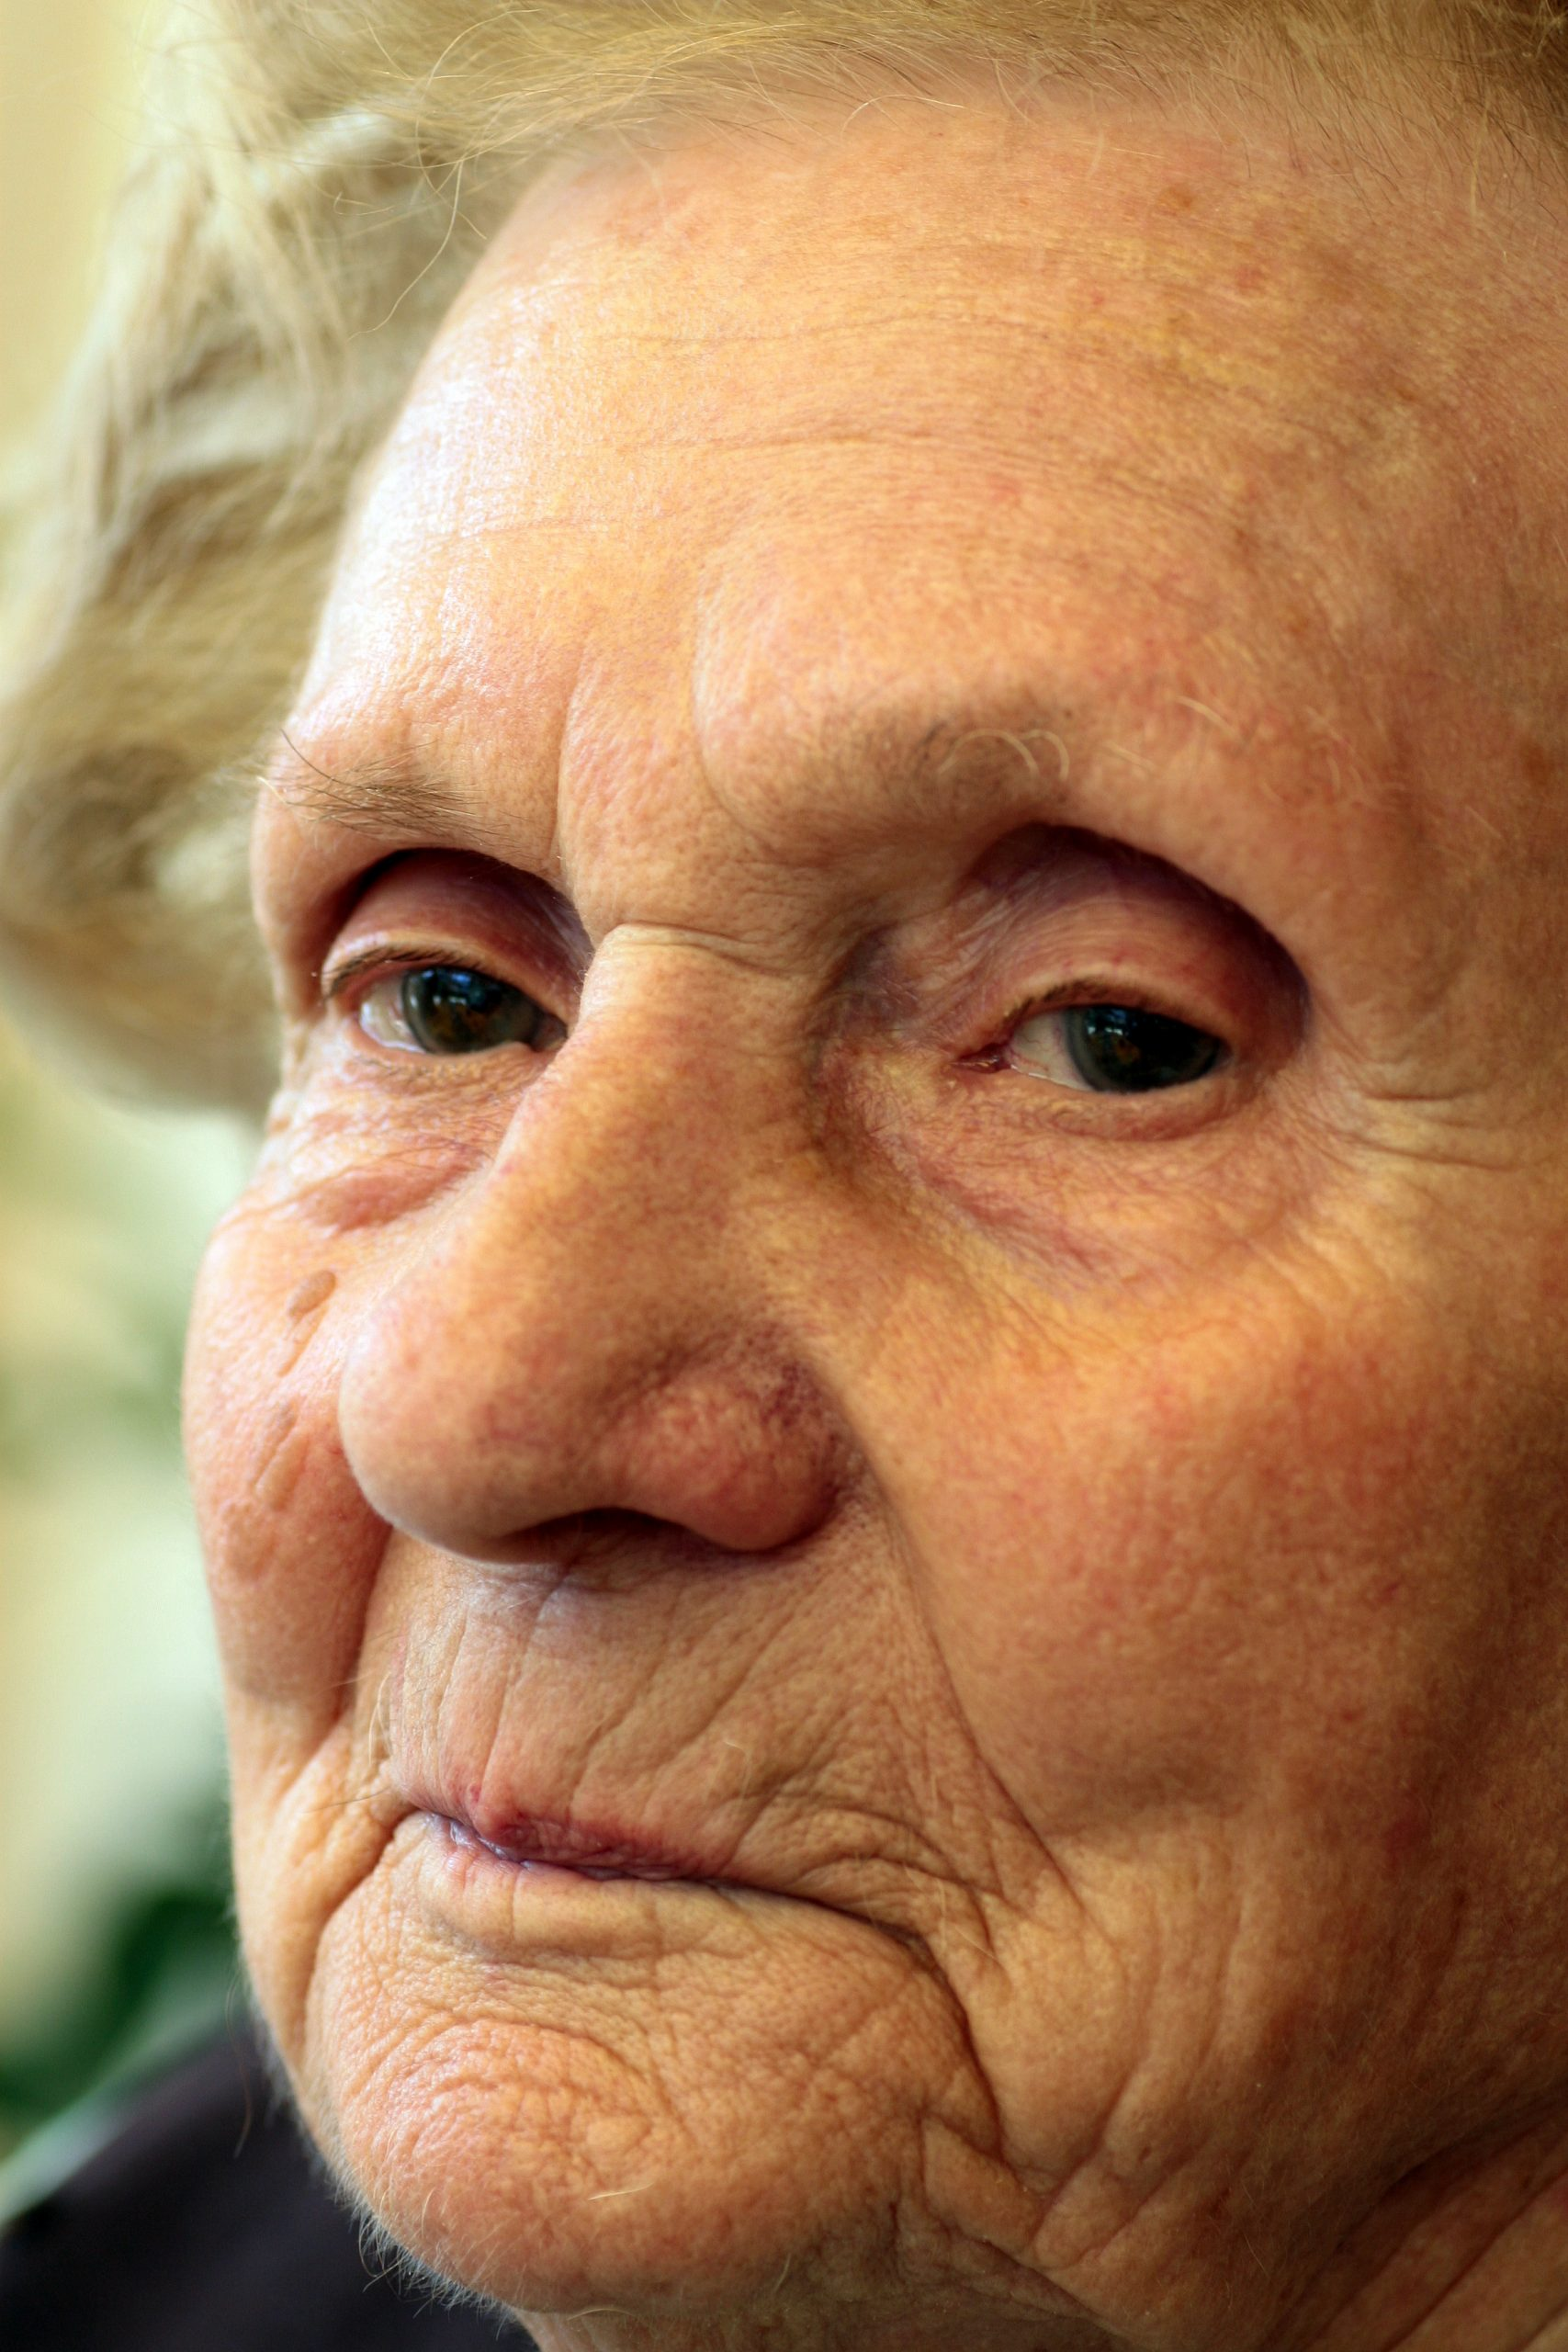 What Health Issue May Be a Hint of Dementia?